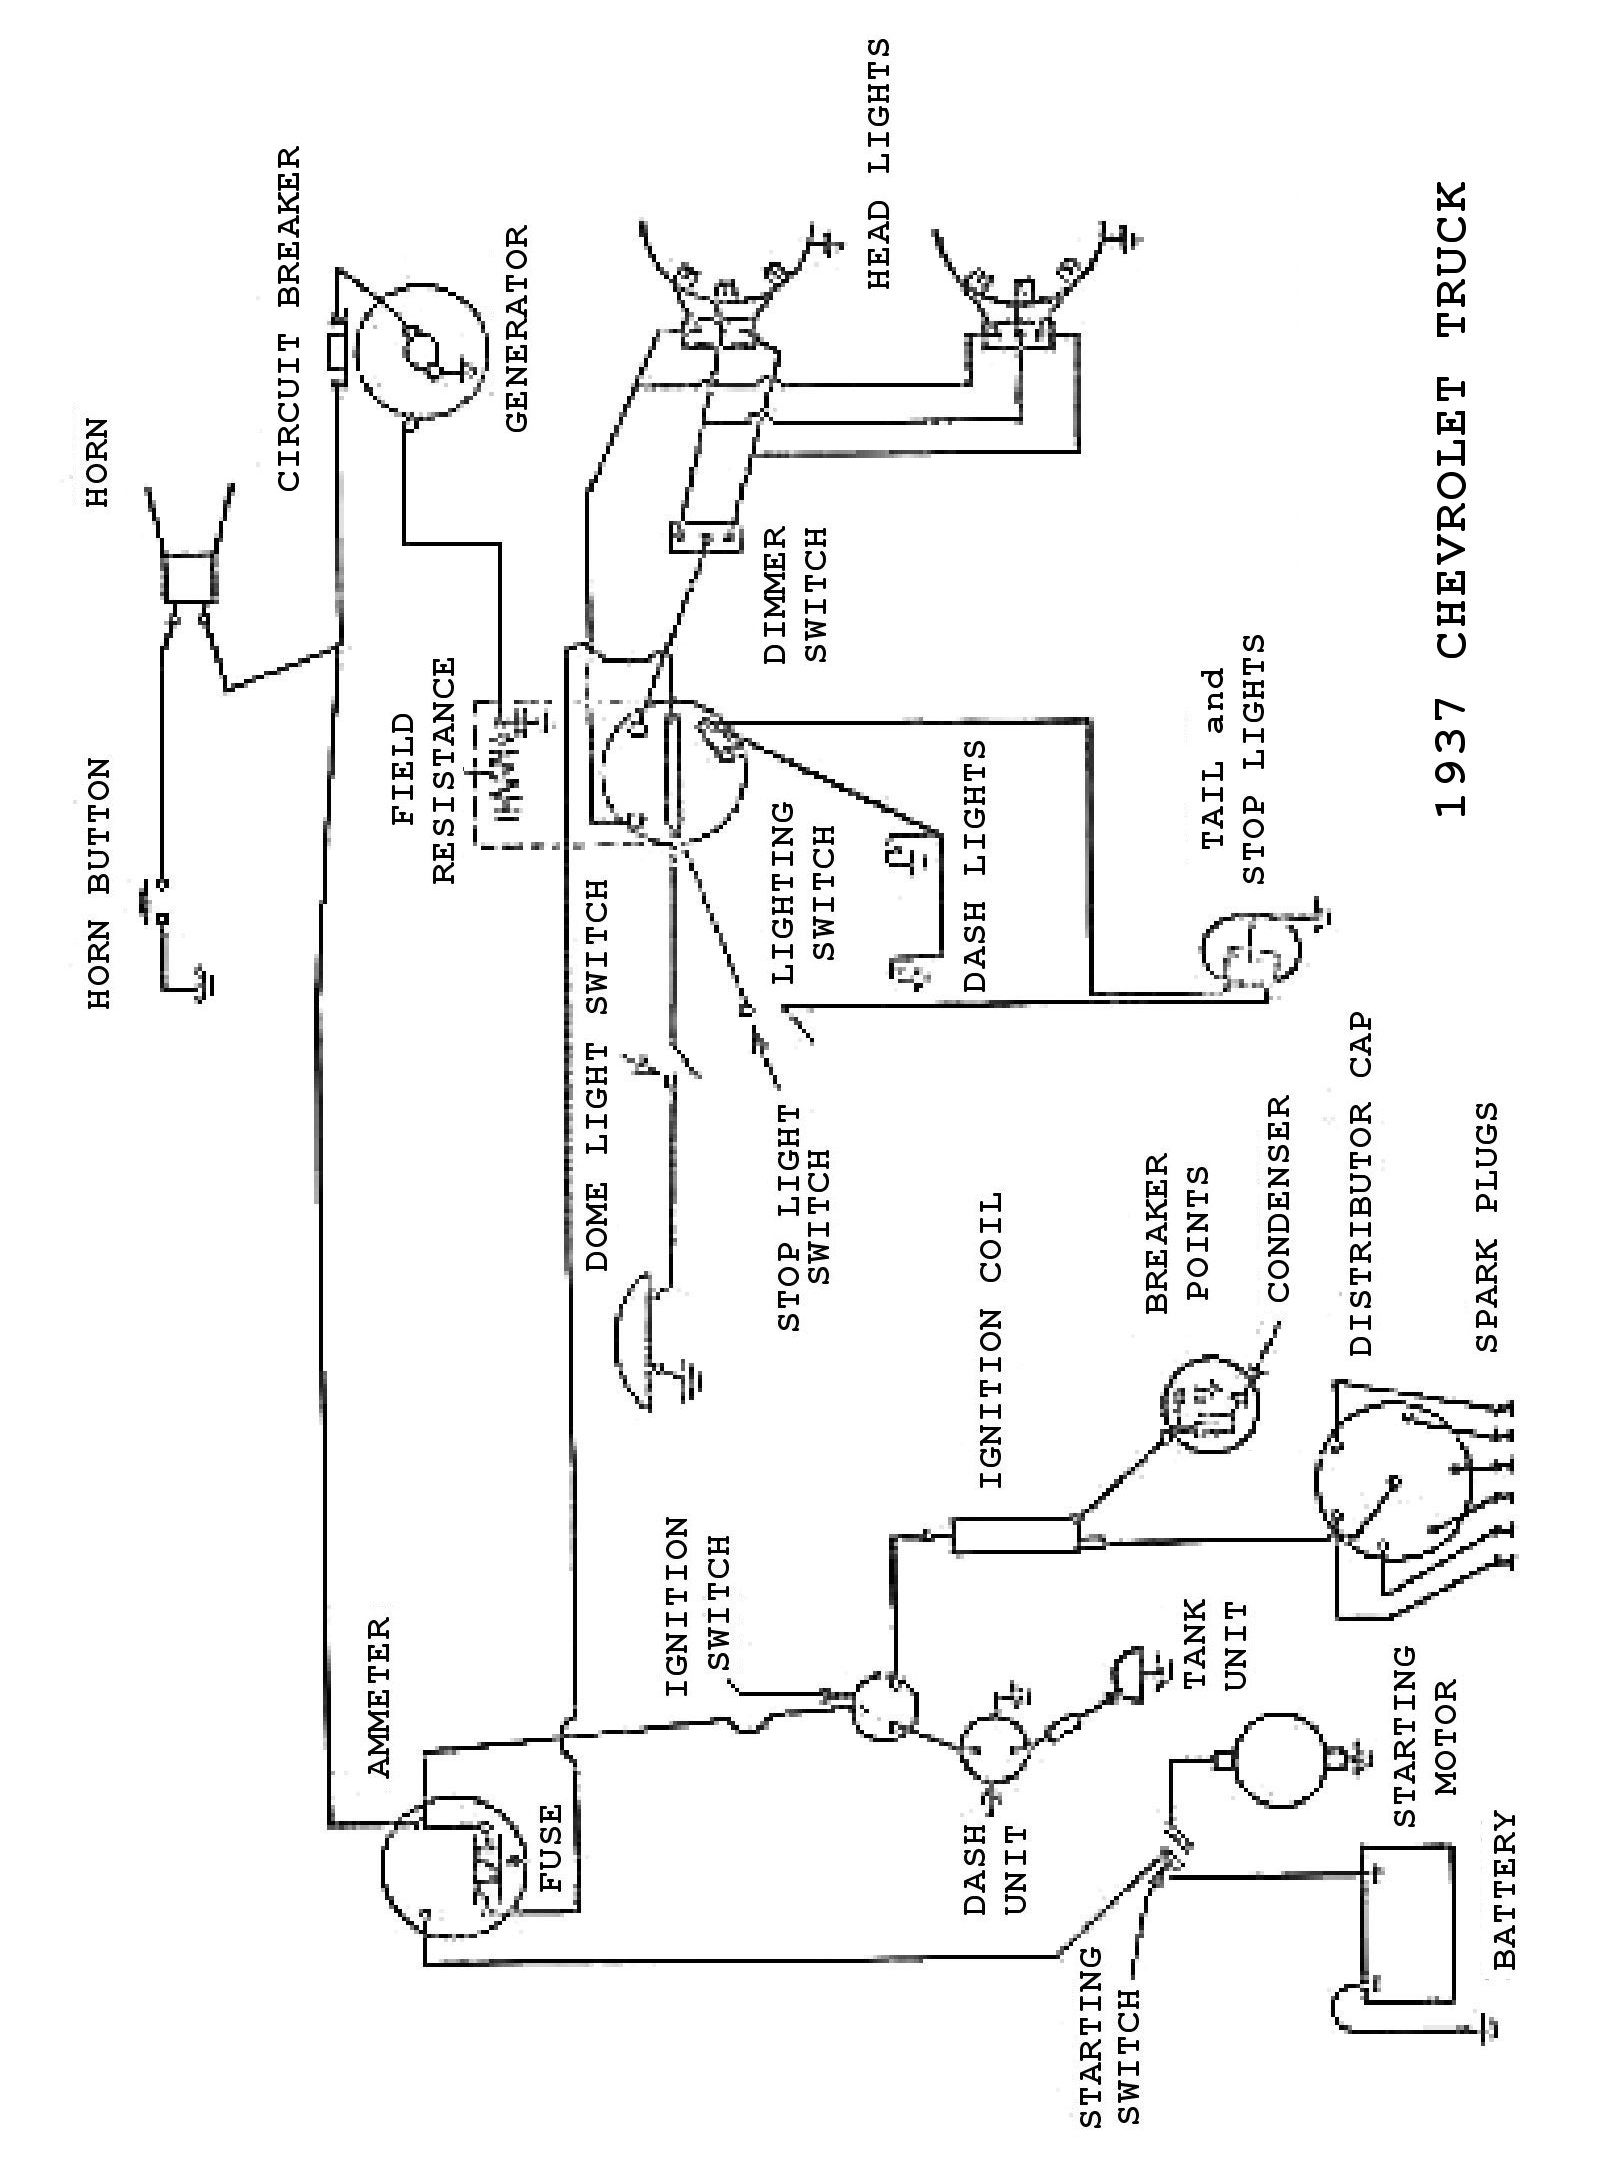 dome light wiring diagrams 2000 sunfire 14 28 kenmo lp de \u2022chevy dome light wiring diagram wiring library rh mckortenoord nl chevy dome light wiring diagram vw